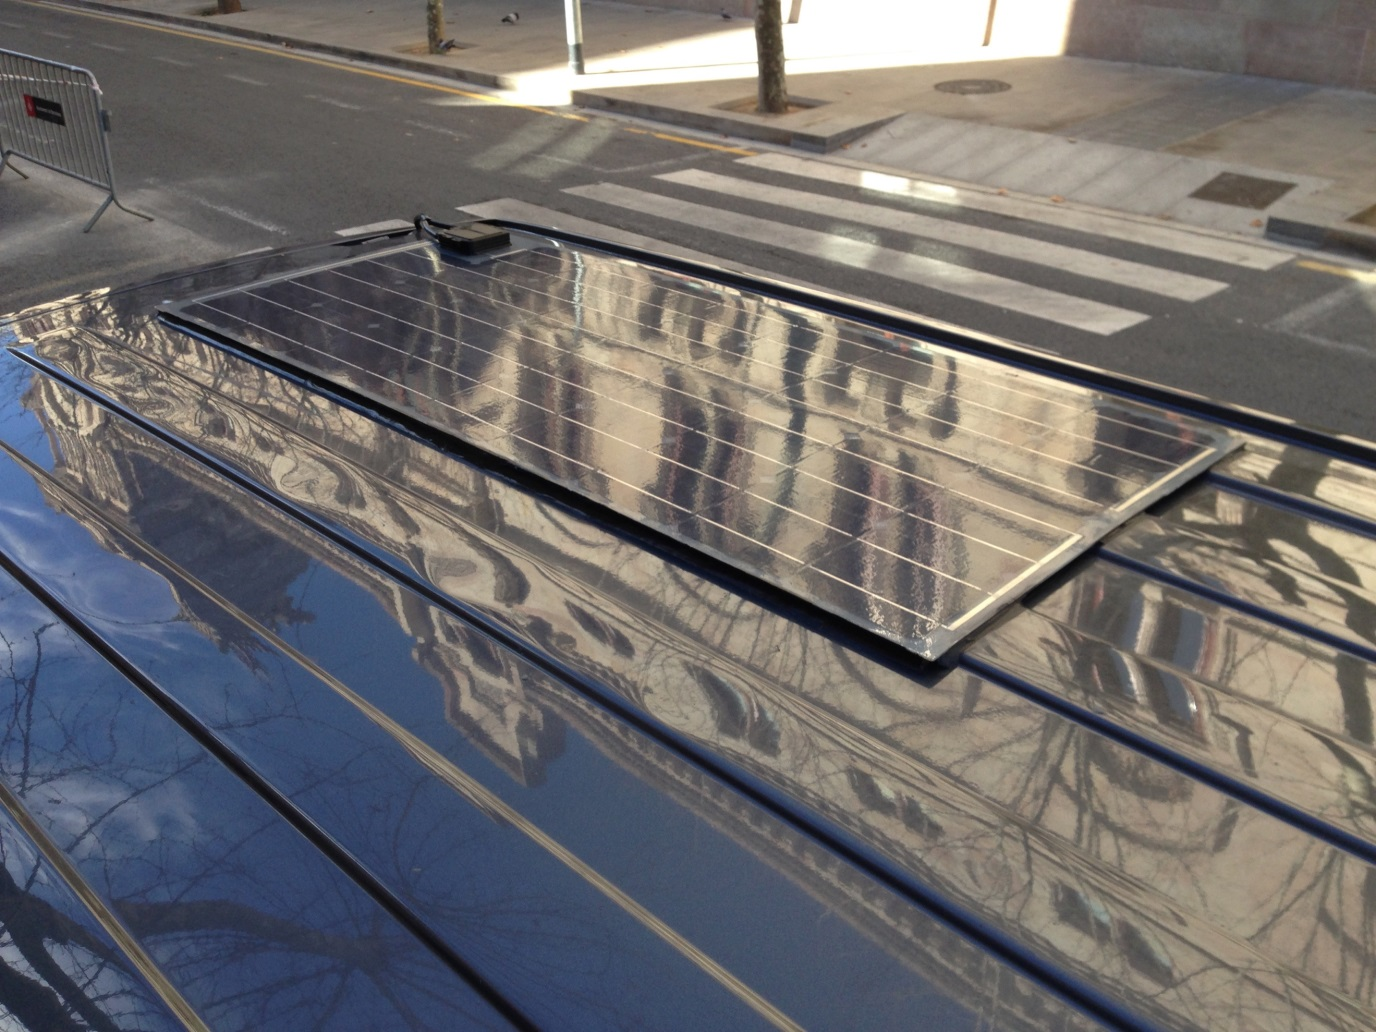 Solar panels on the van roof!